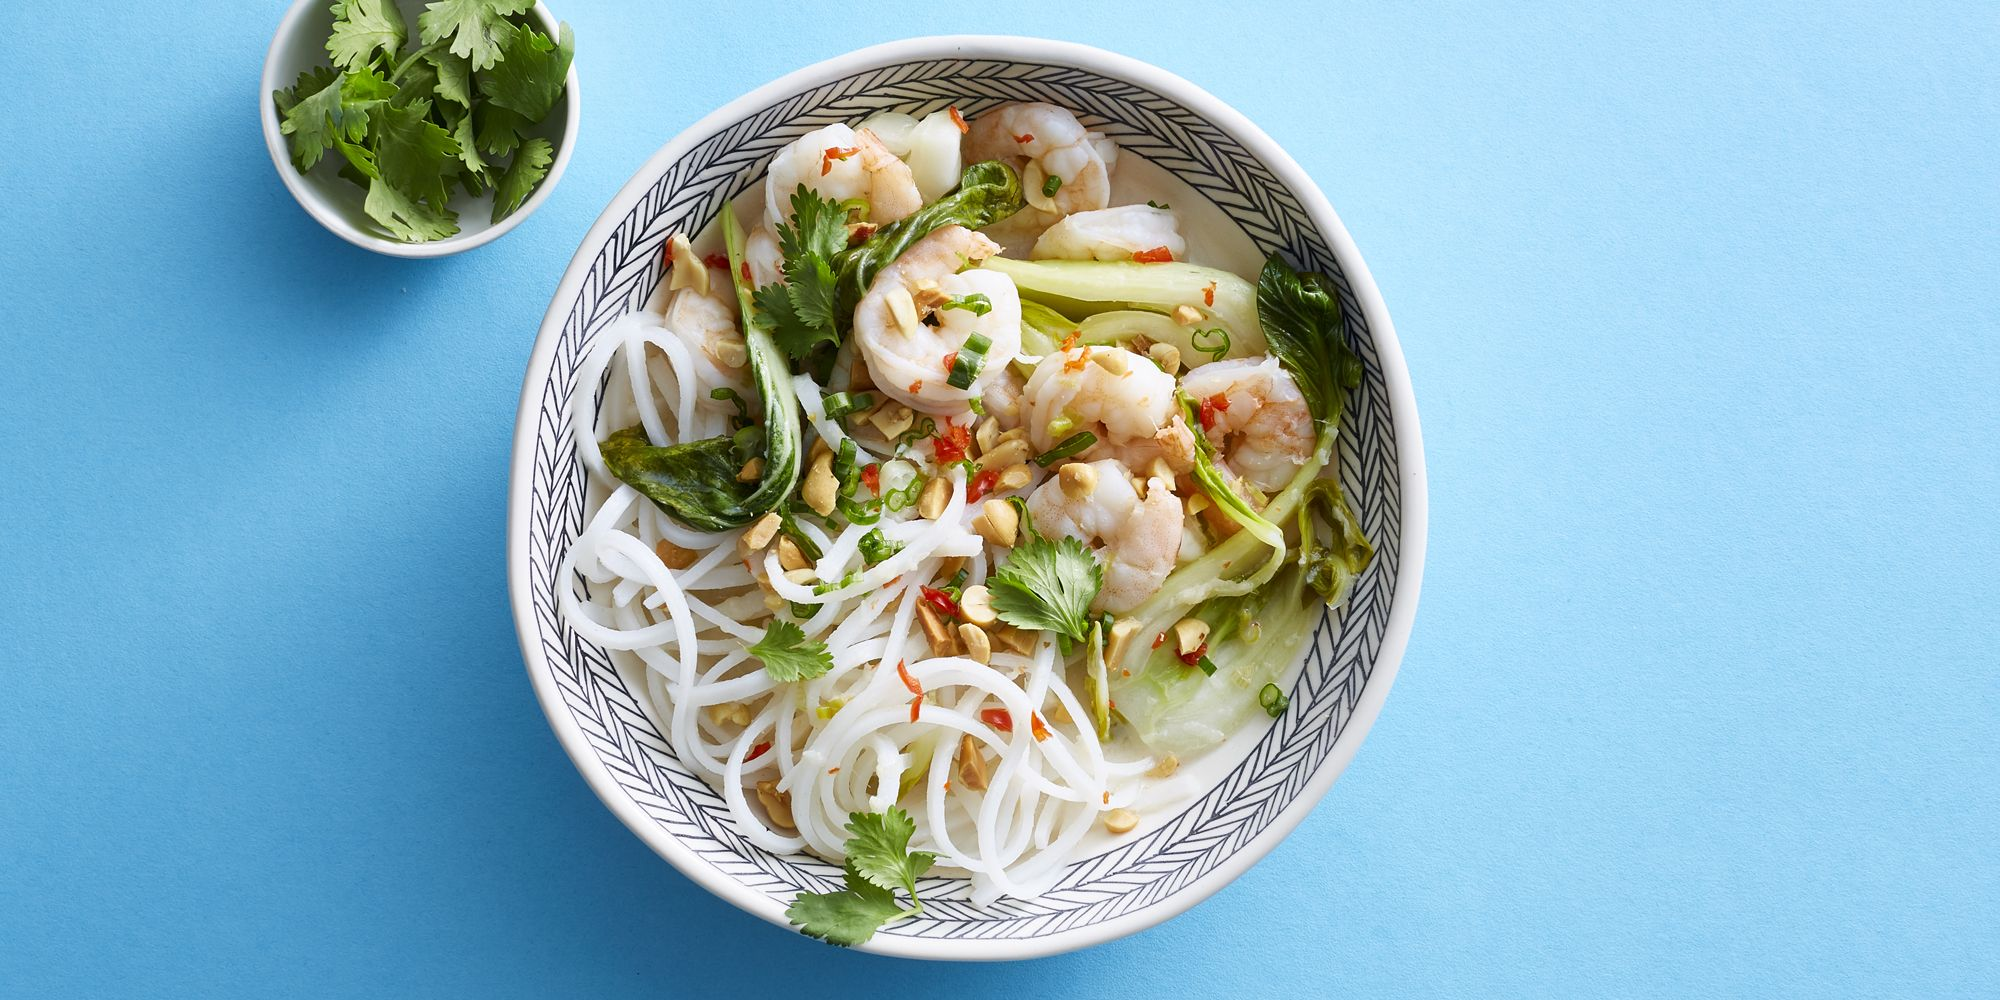 40 Good-Luck Foods to Eat on New Year's Day